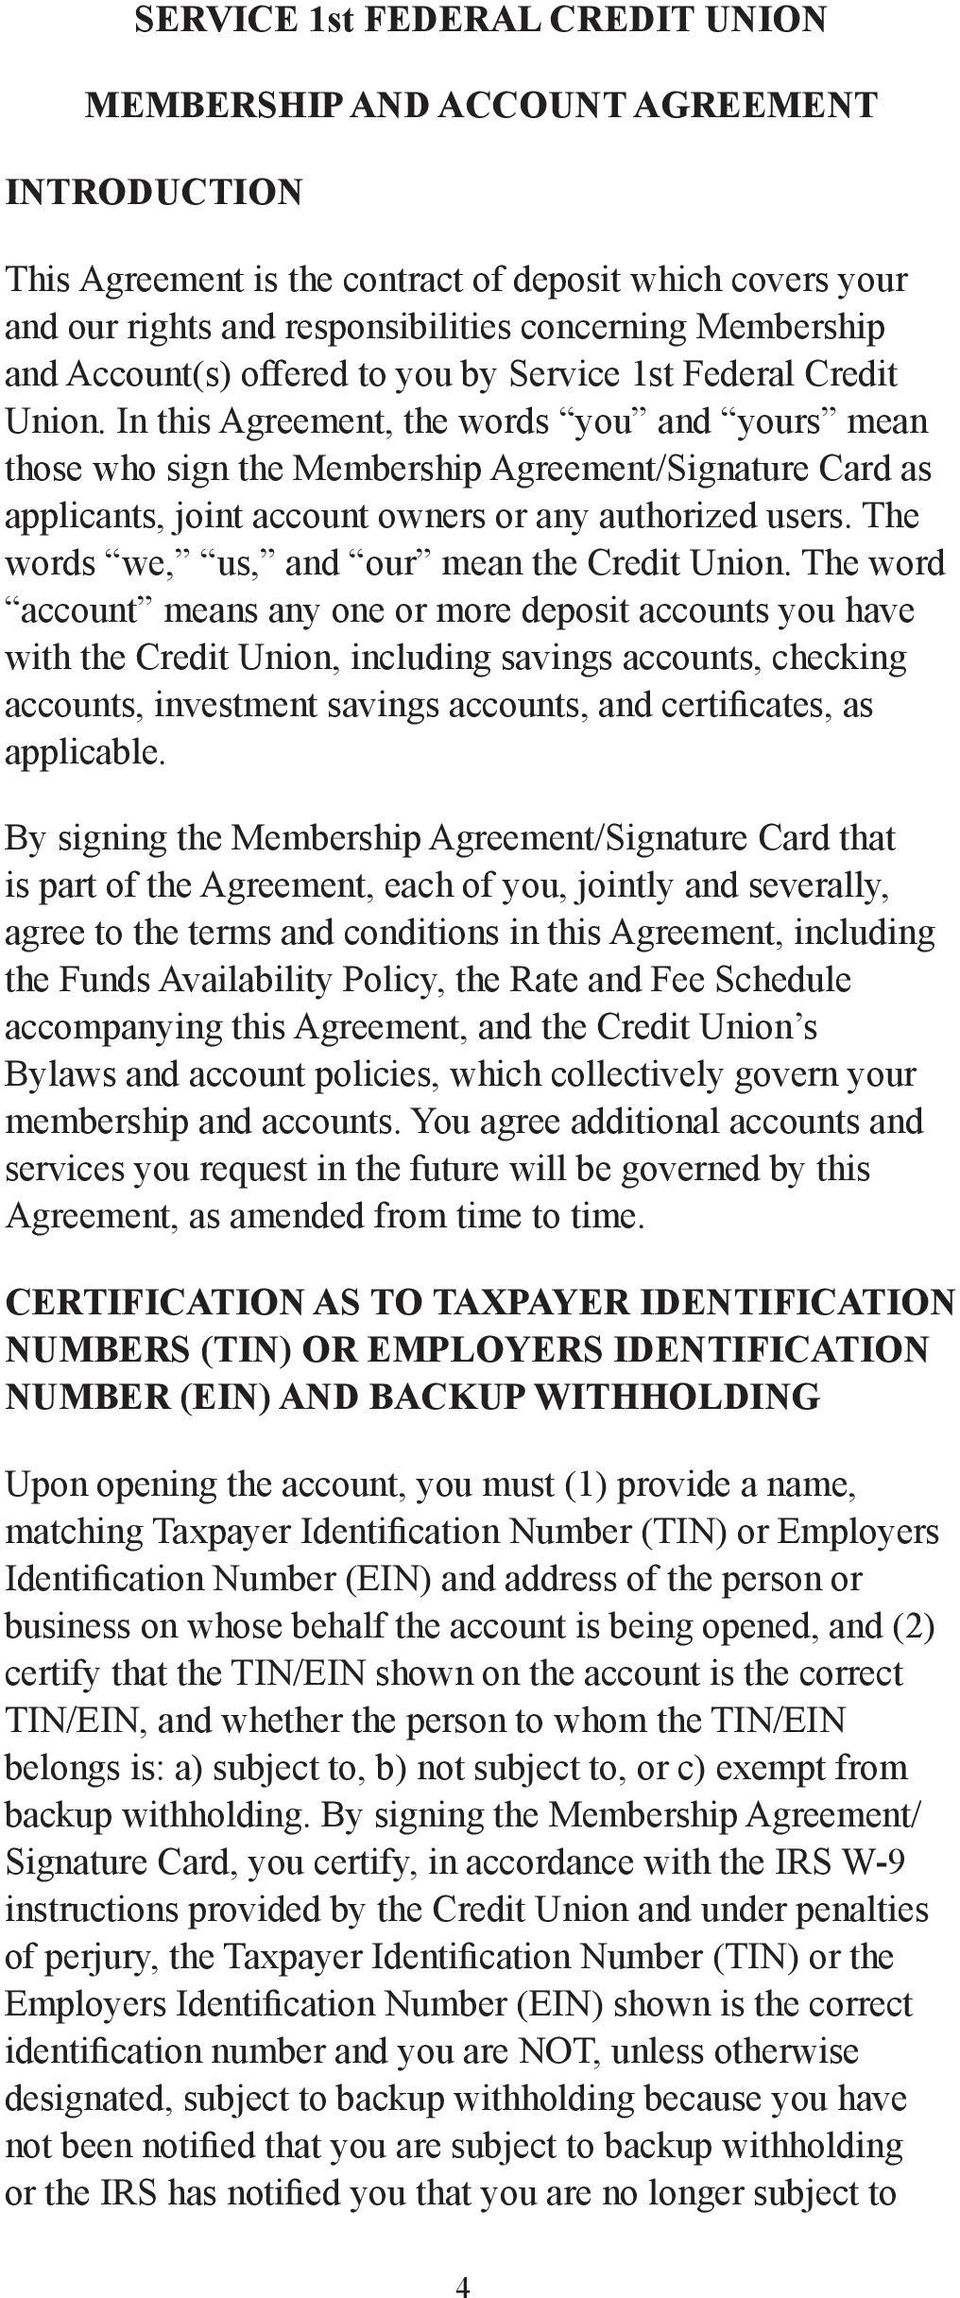 In this Agreement, the words you and yours mean those who sign the Membership Agreement/Signature Card as applicants, joint account owners or any authorized users.